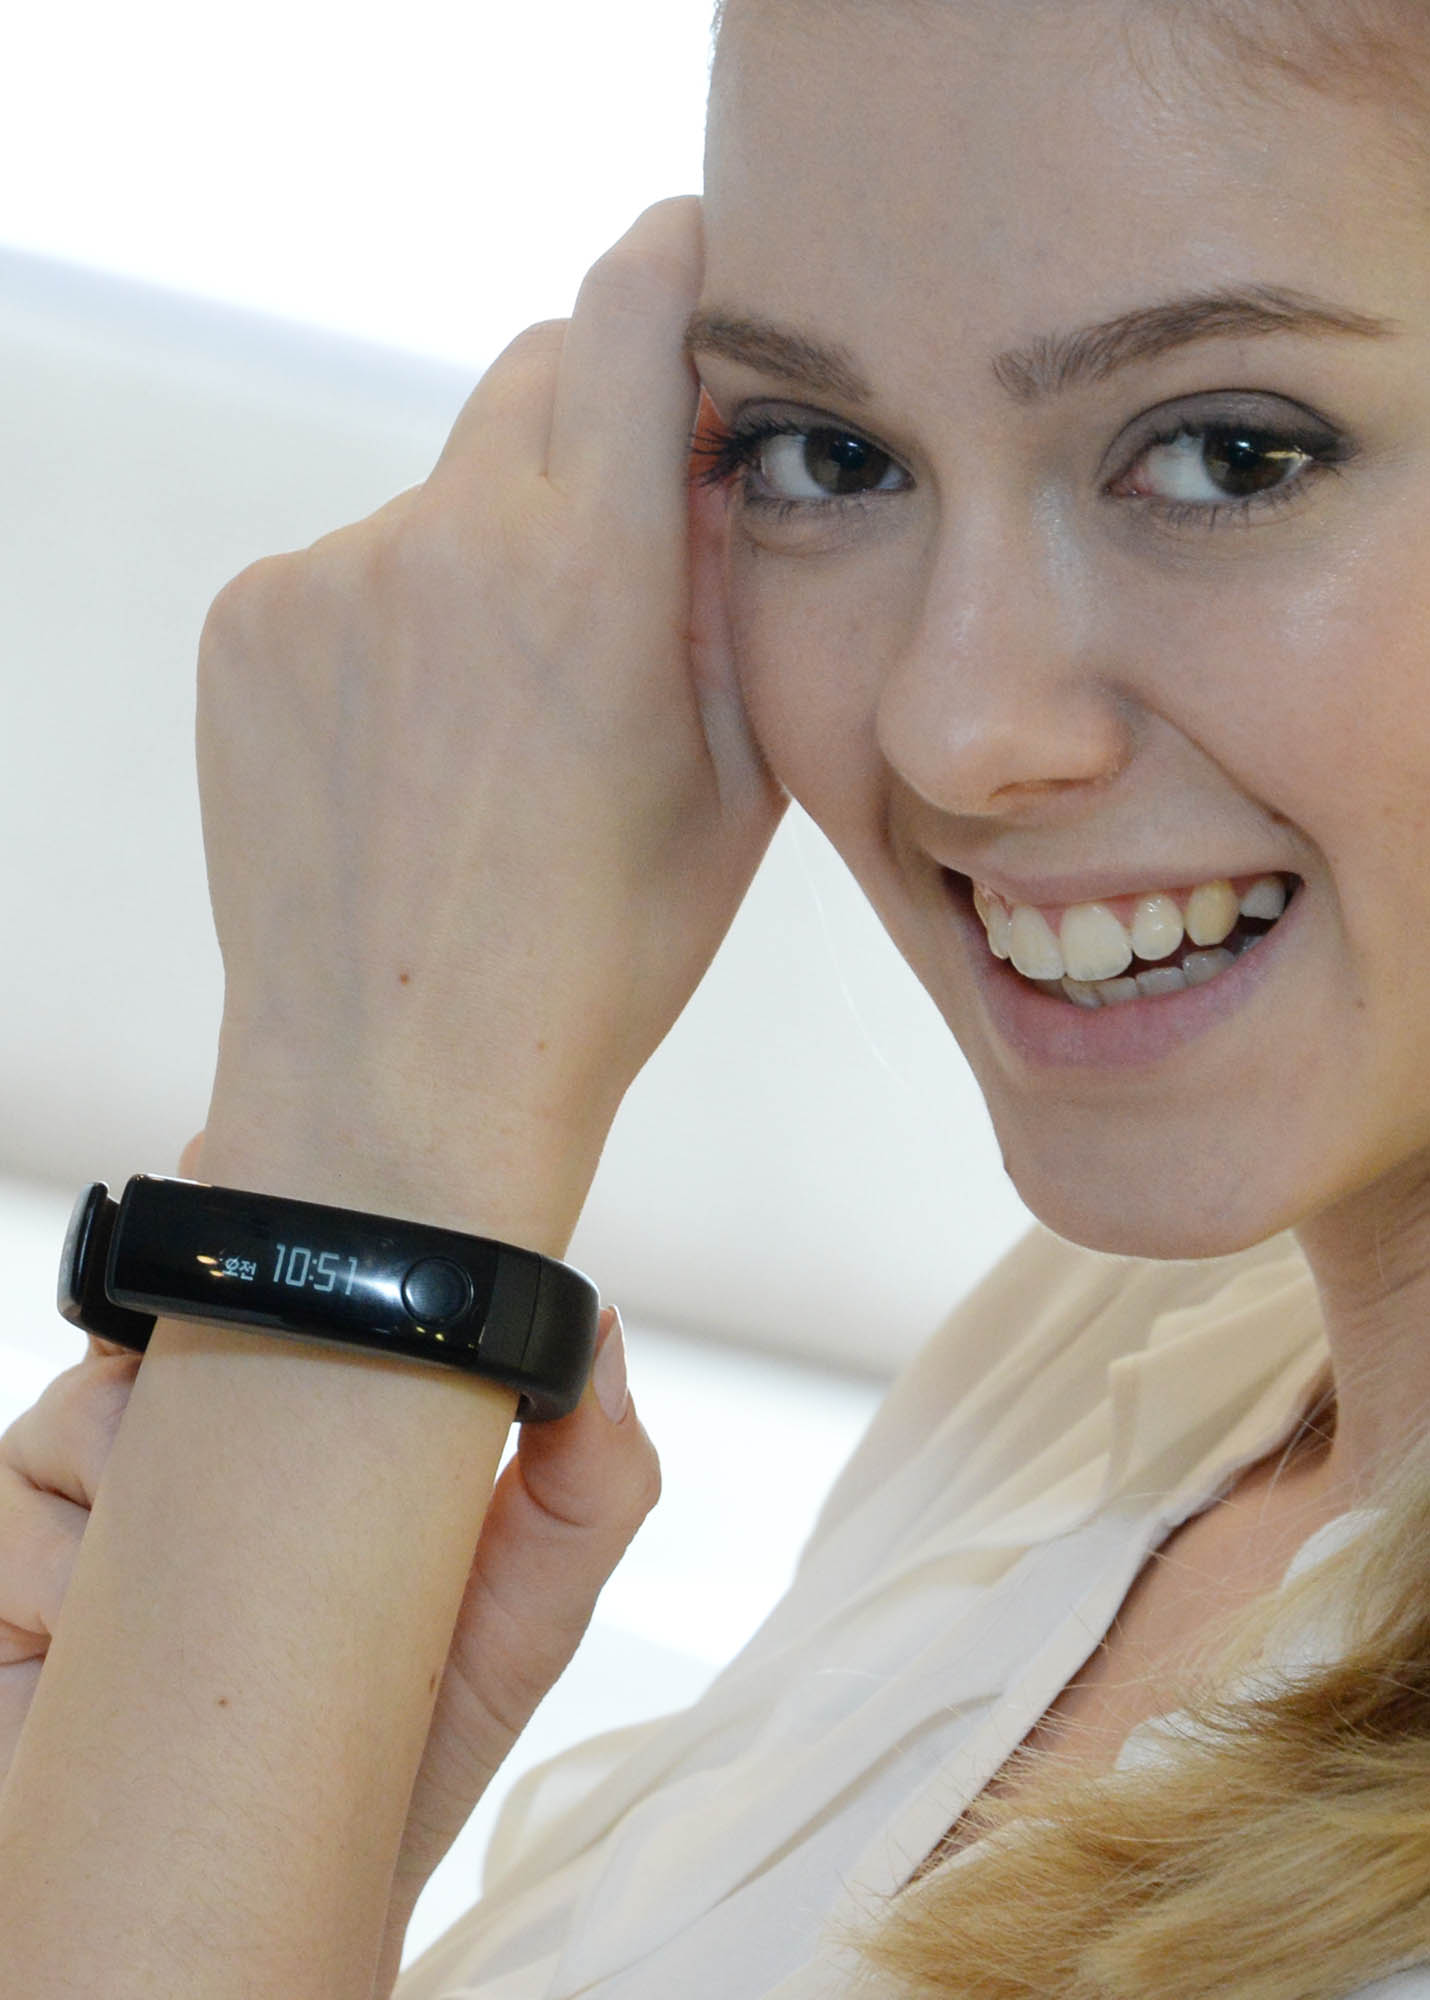 LG Lifeband Touch on wrist